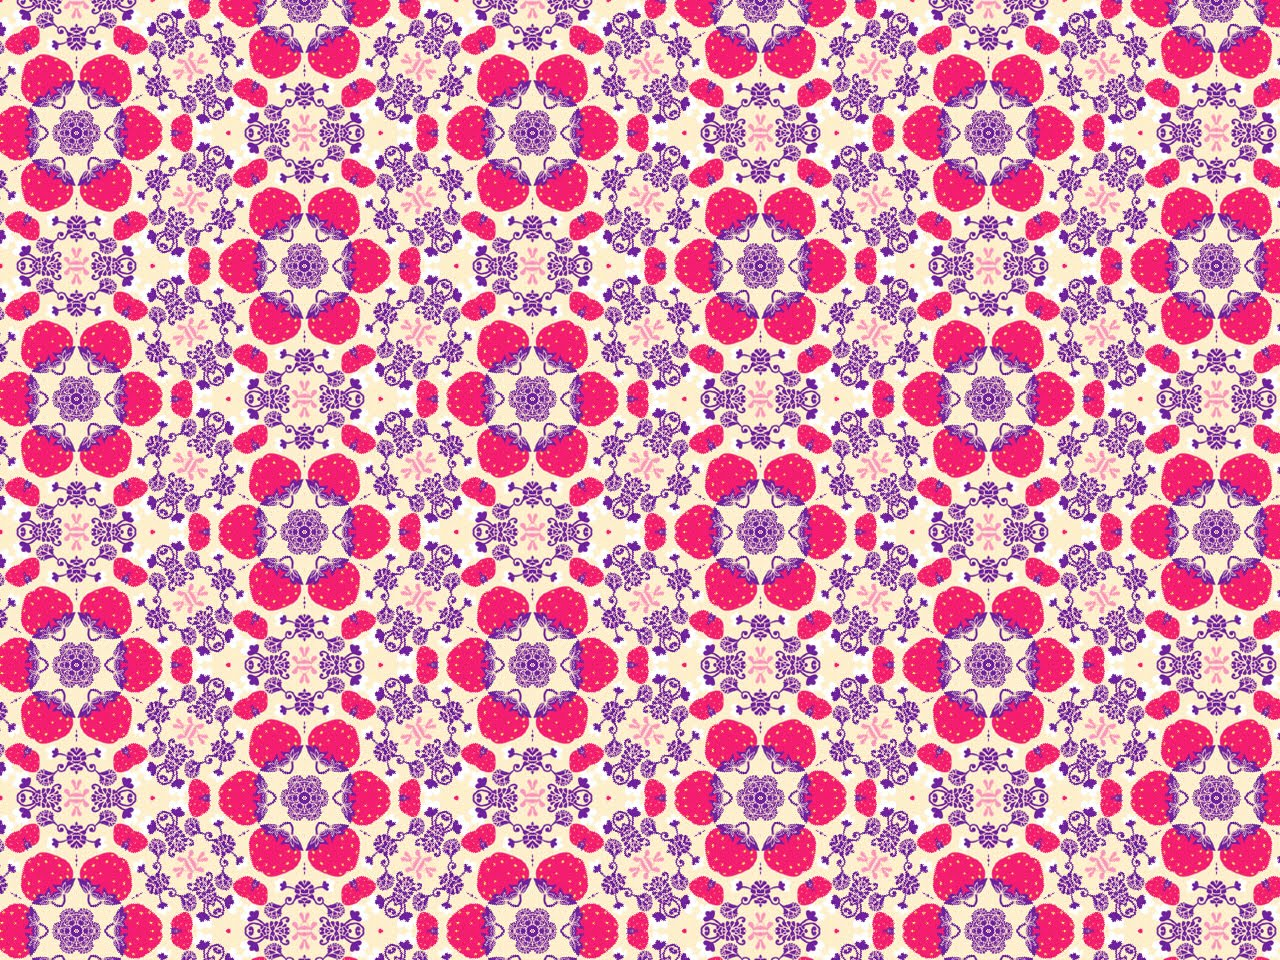 Paper Crafts Bright pink cream and purple   Pretty backgrounds 1280x960